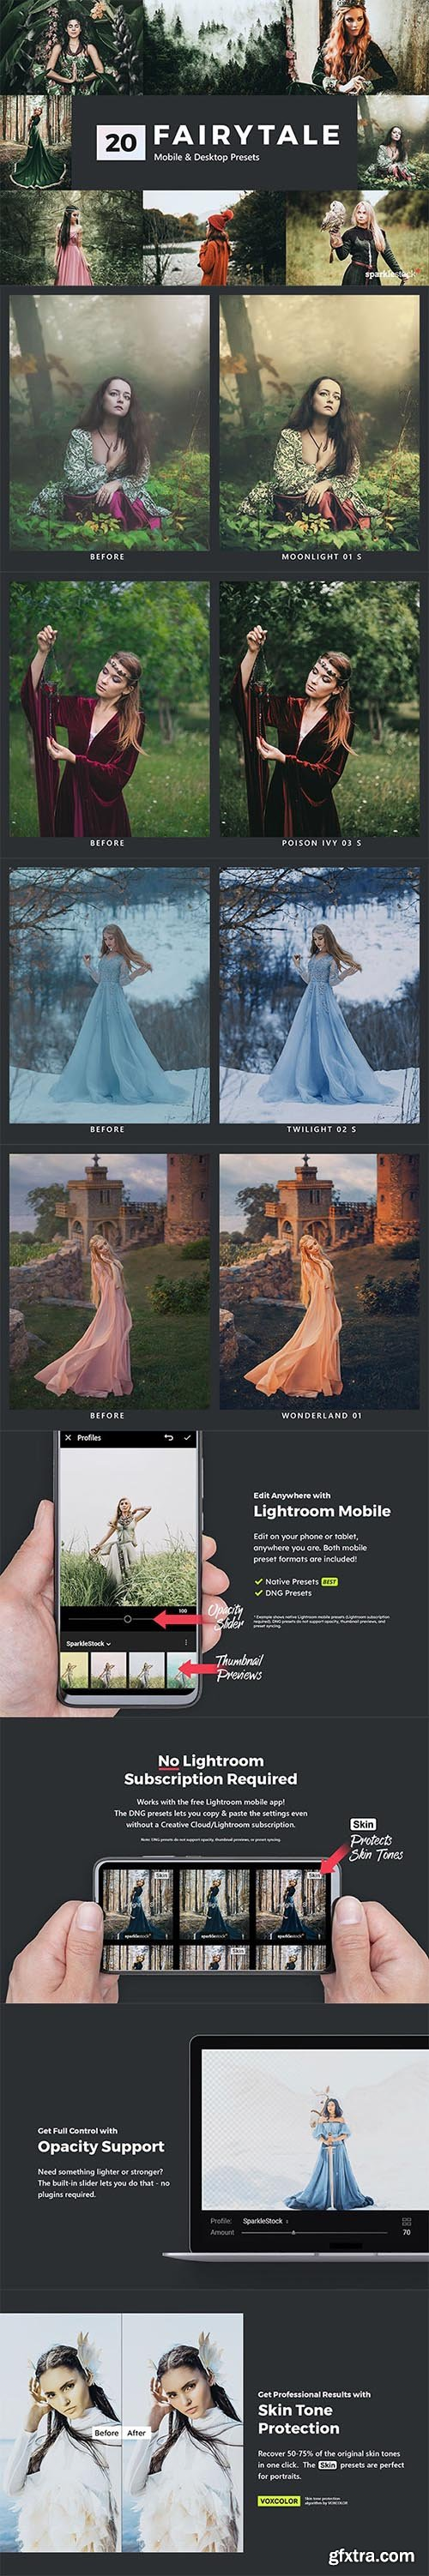 GraphicRiver - 20 Fairytale Lightroom Presets & LUTs 28334845